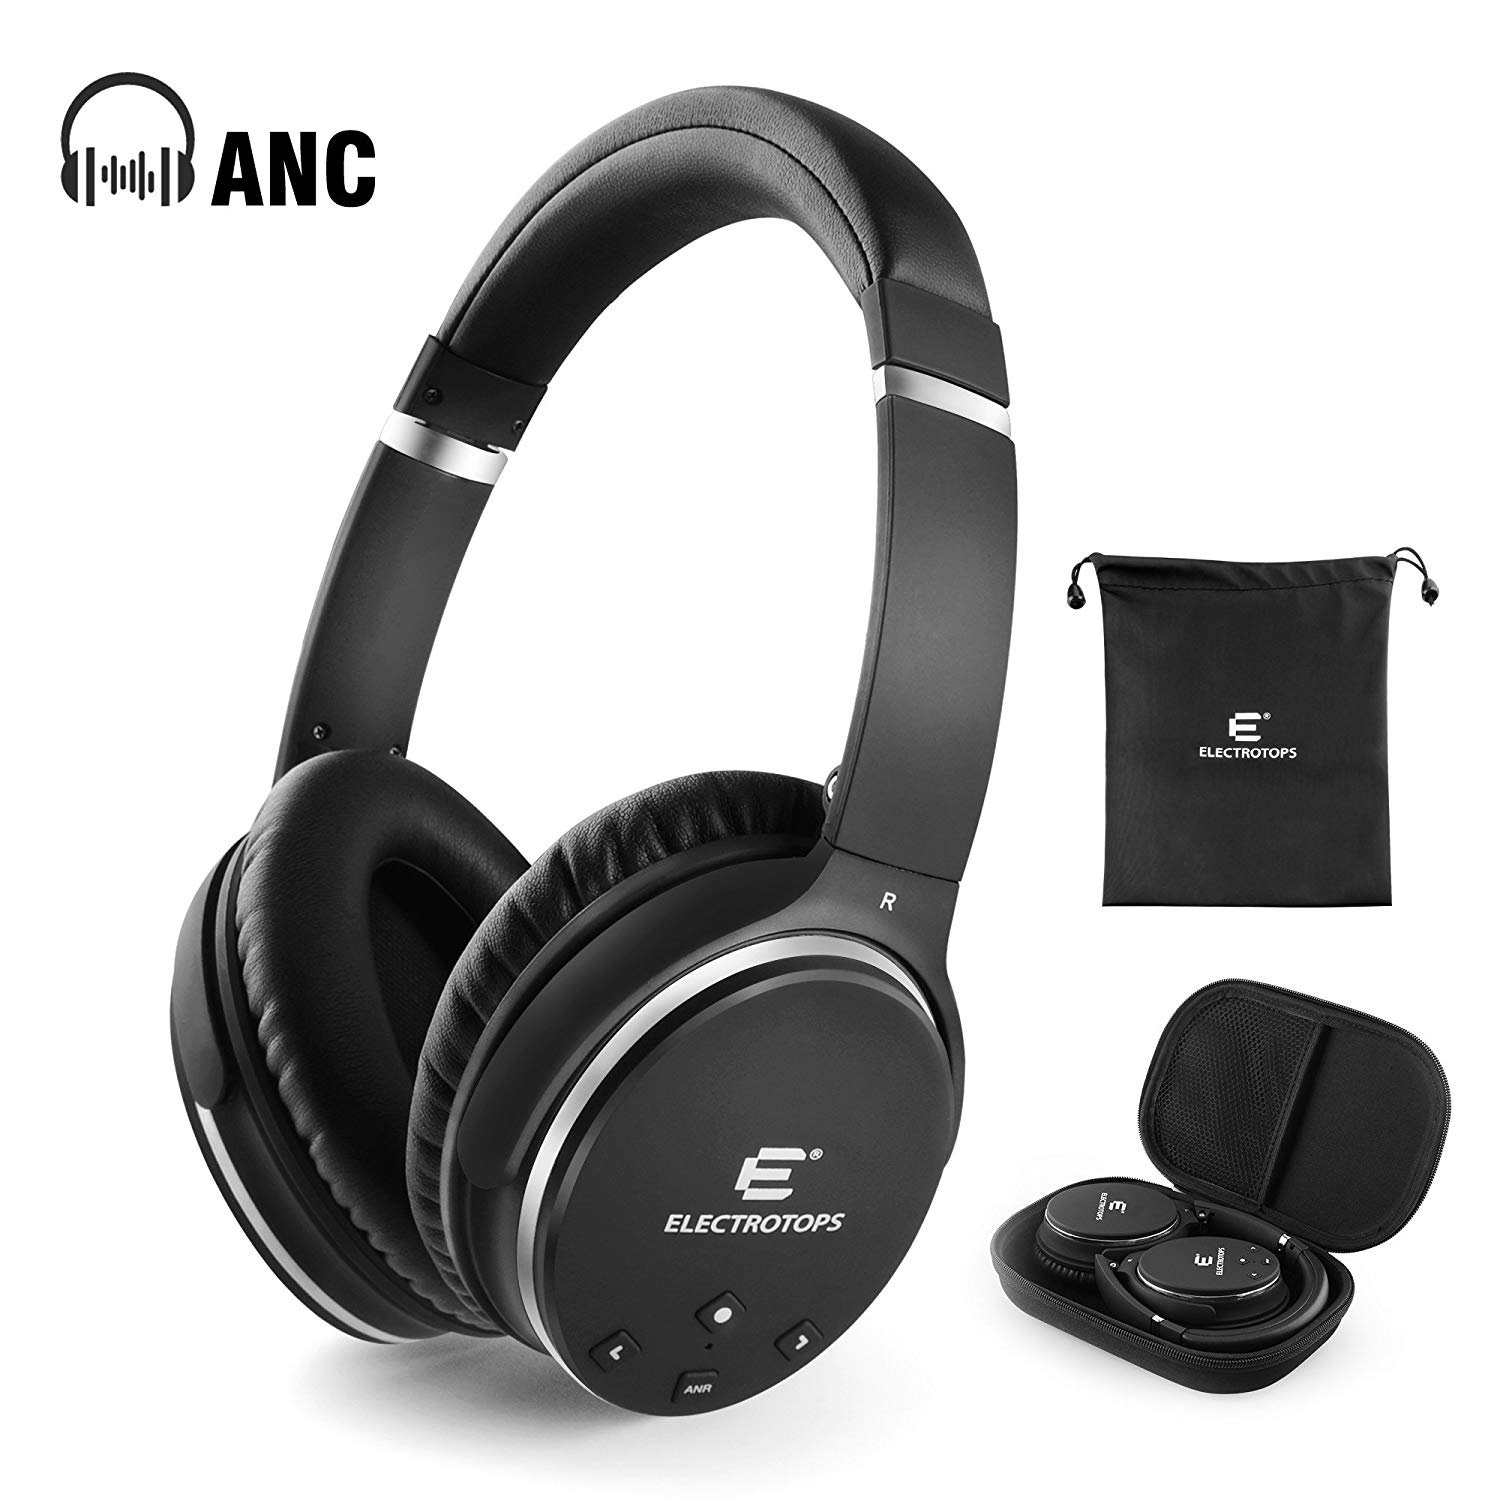 Active Noise Cancelling Bluetooth Headphones, Over-Ear Hi-Fi Deep Bass Wireless Headphones with Microphone, 90°Swiveling Earcups Adjust Headband Soft Earpads Earmuff for Travel Work TV Computer Phone